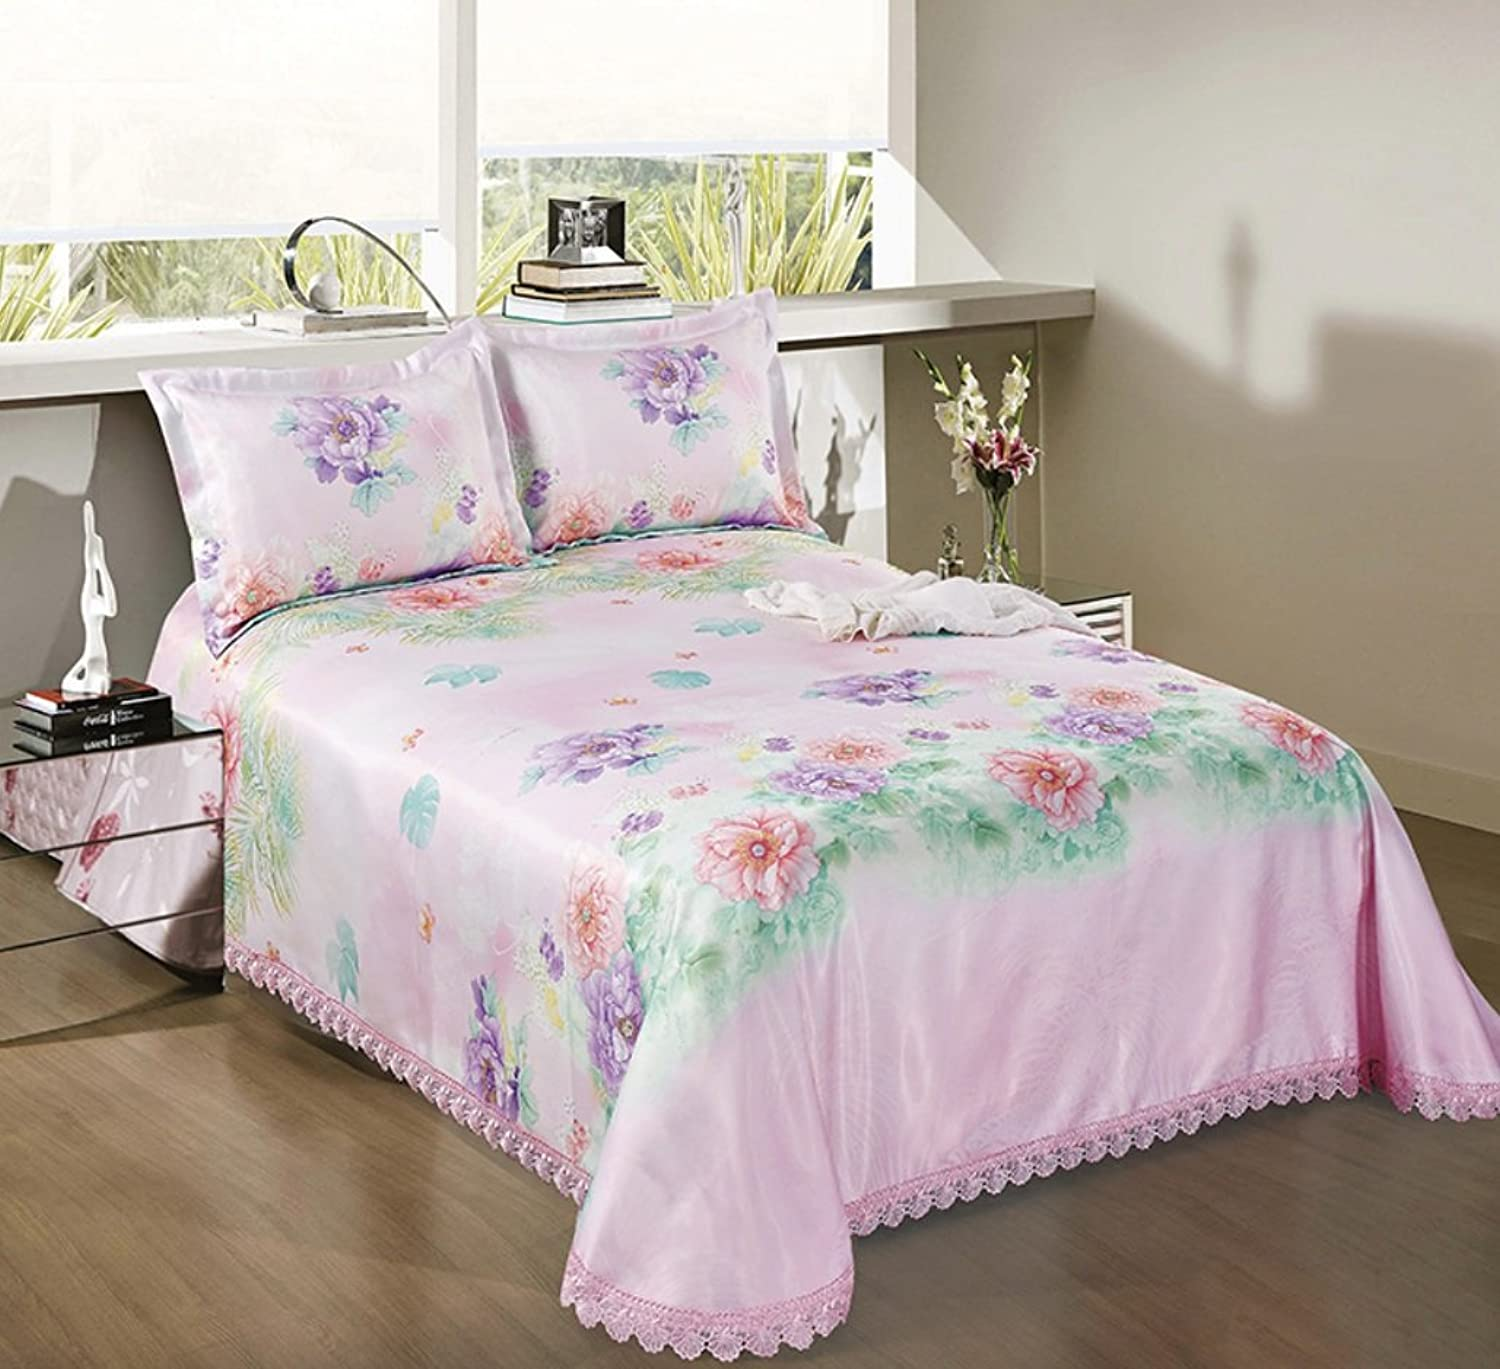 Washed Mat Sheet Linen Printing Lace Ice Silk Mat Three Sets ZXCV (color   1, Size   1.8  2m)